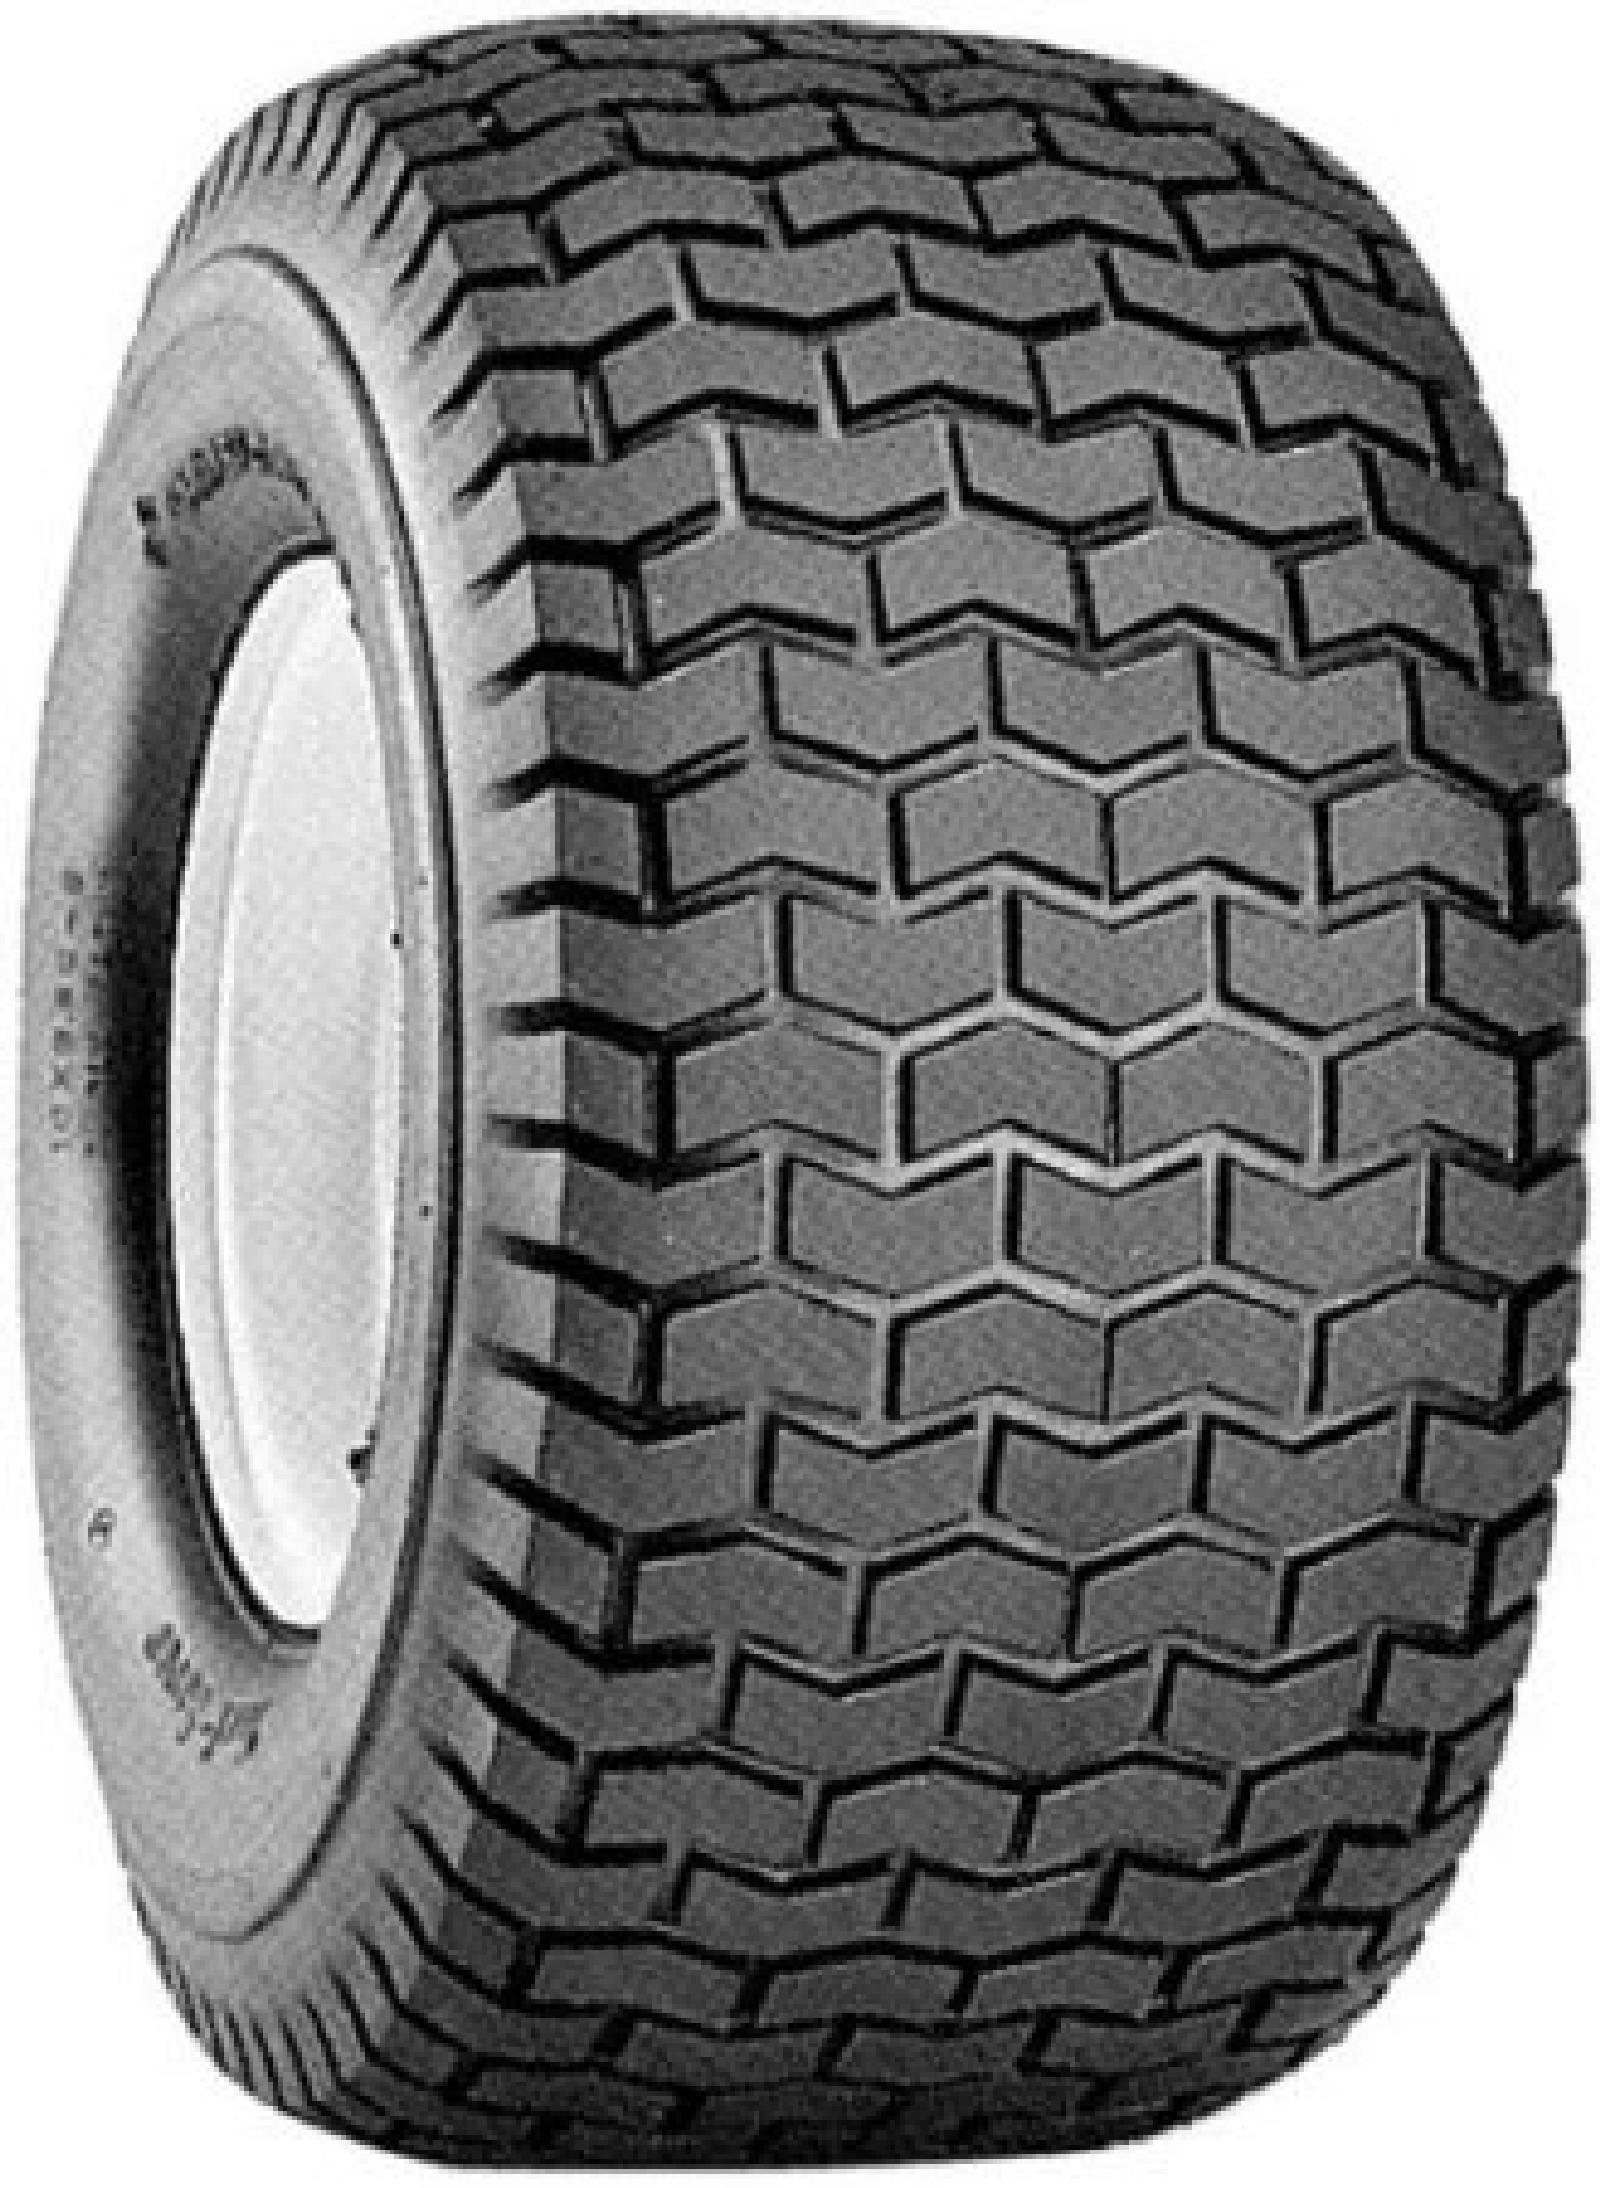 CARLISLE TIRE 410/350 4 2 part# 70-302 by Oregon